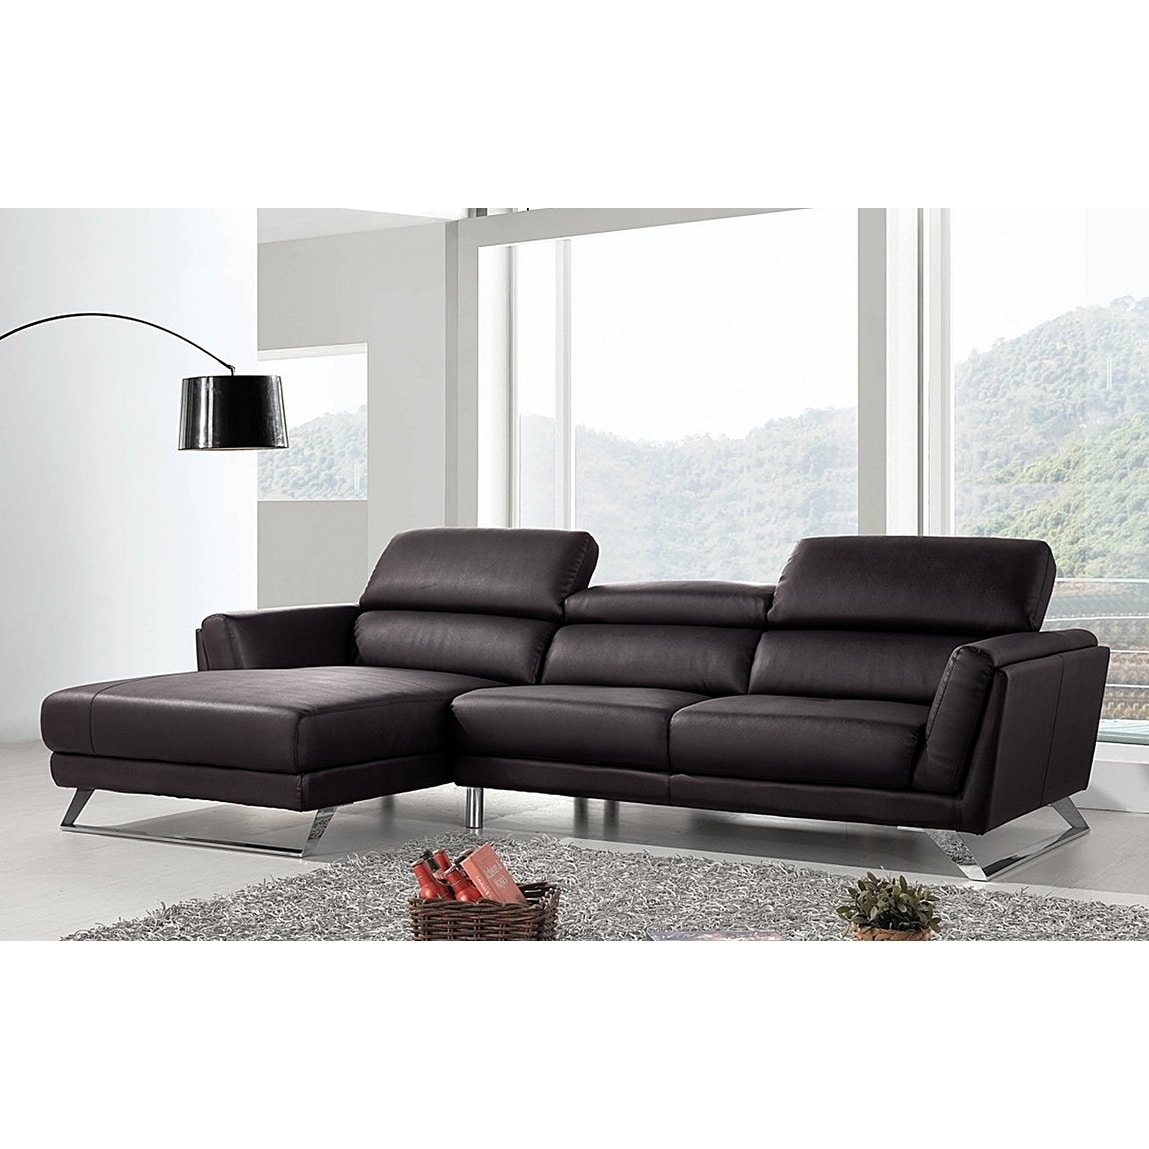 Waldorf Modern Black Leather L-shaped Sofa with Adjustable Headrests